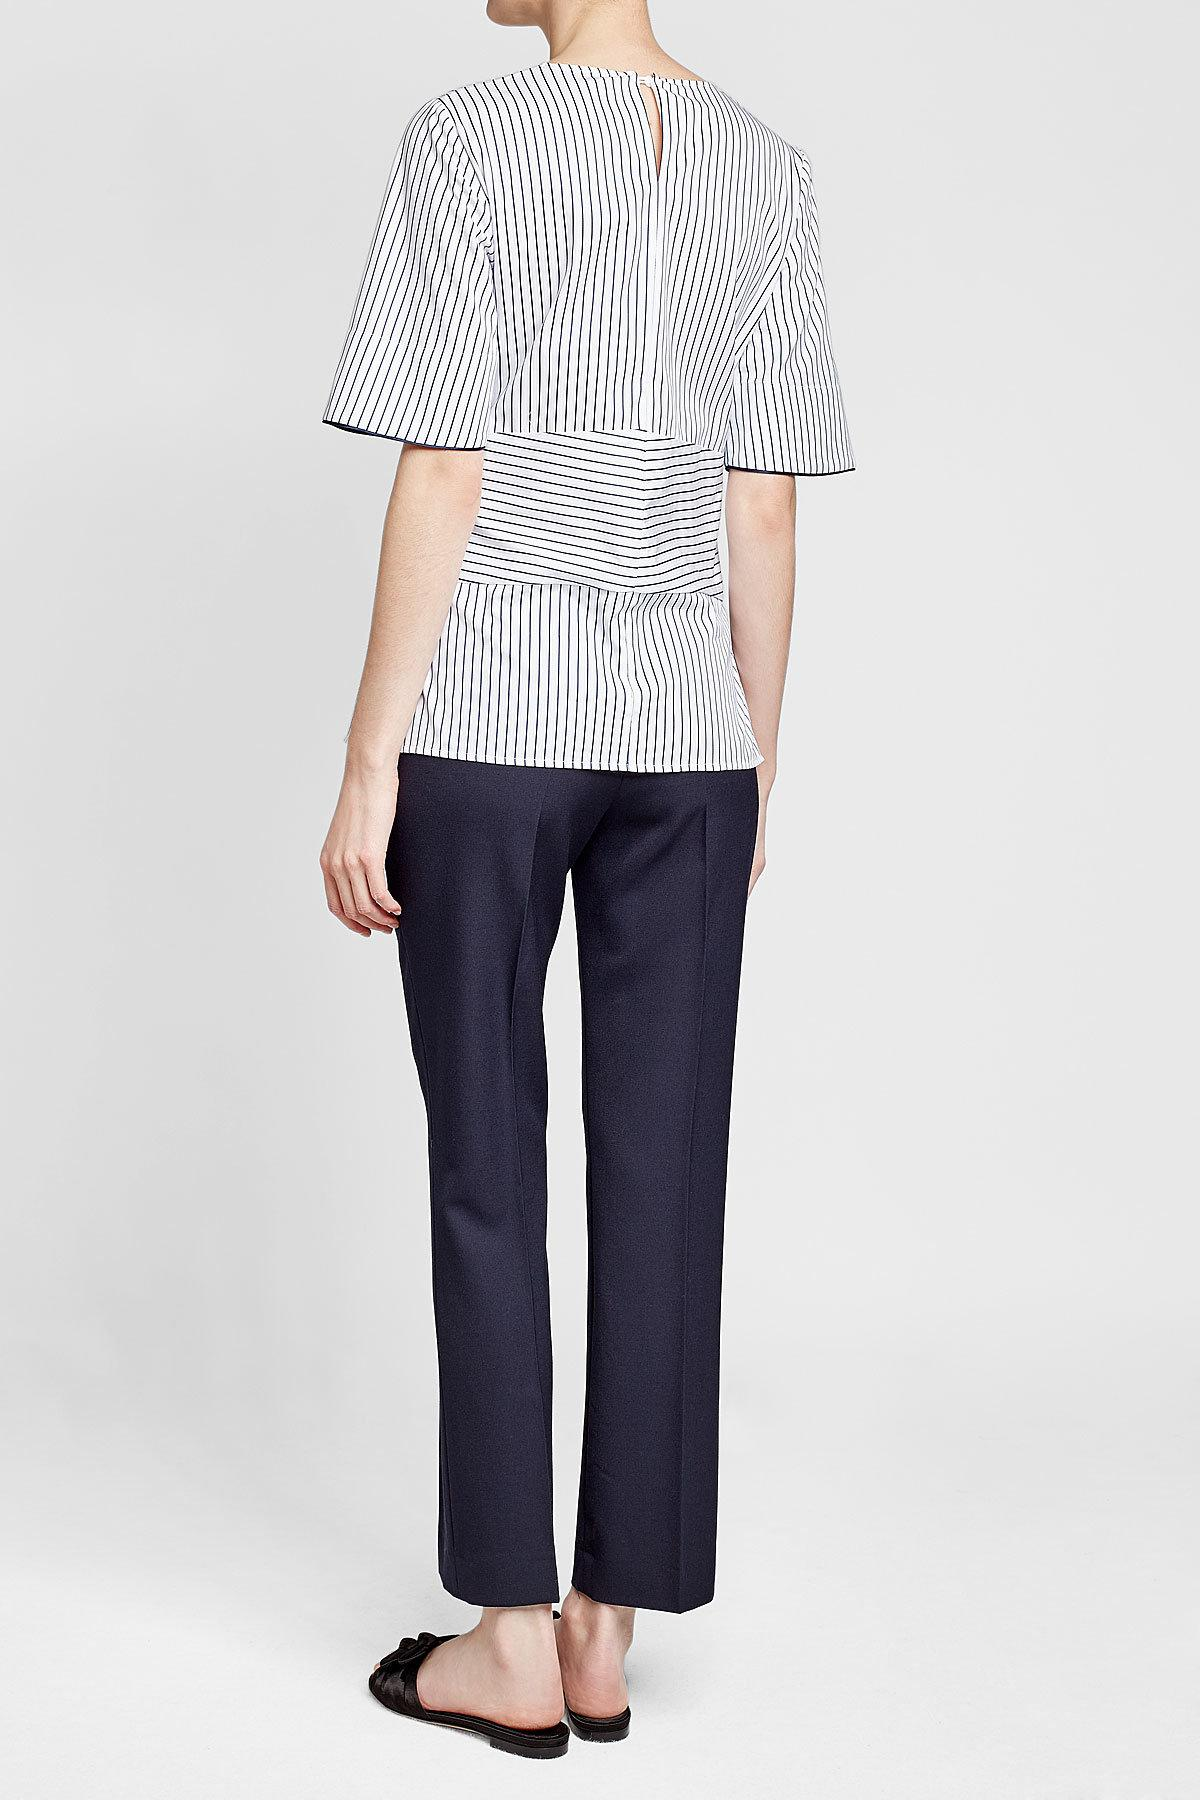 c561c58dd84a5b ... Victoria Beckham - Multicolor Striped Top With Tie - Lyst. View  fullscreen